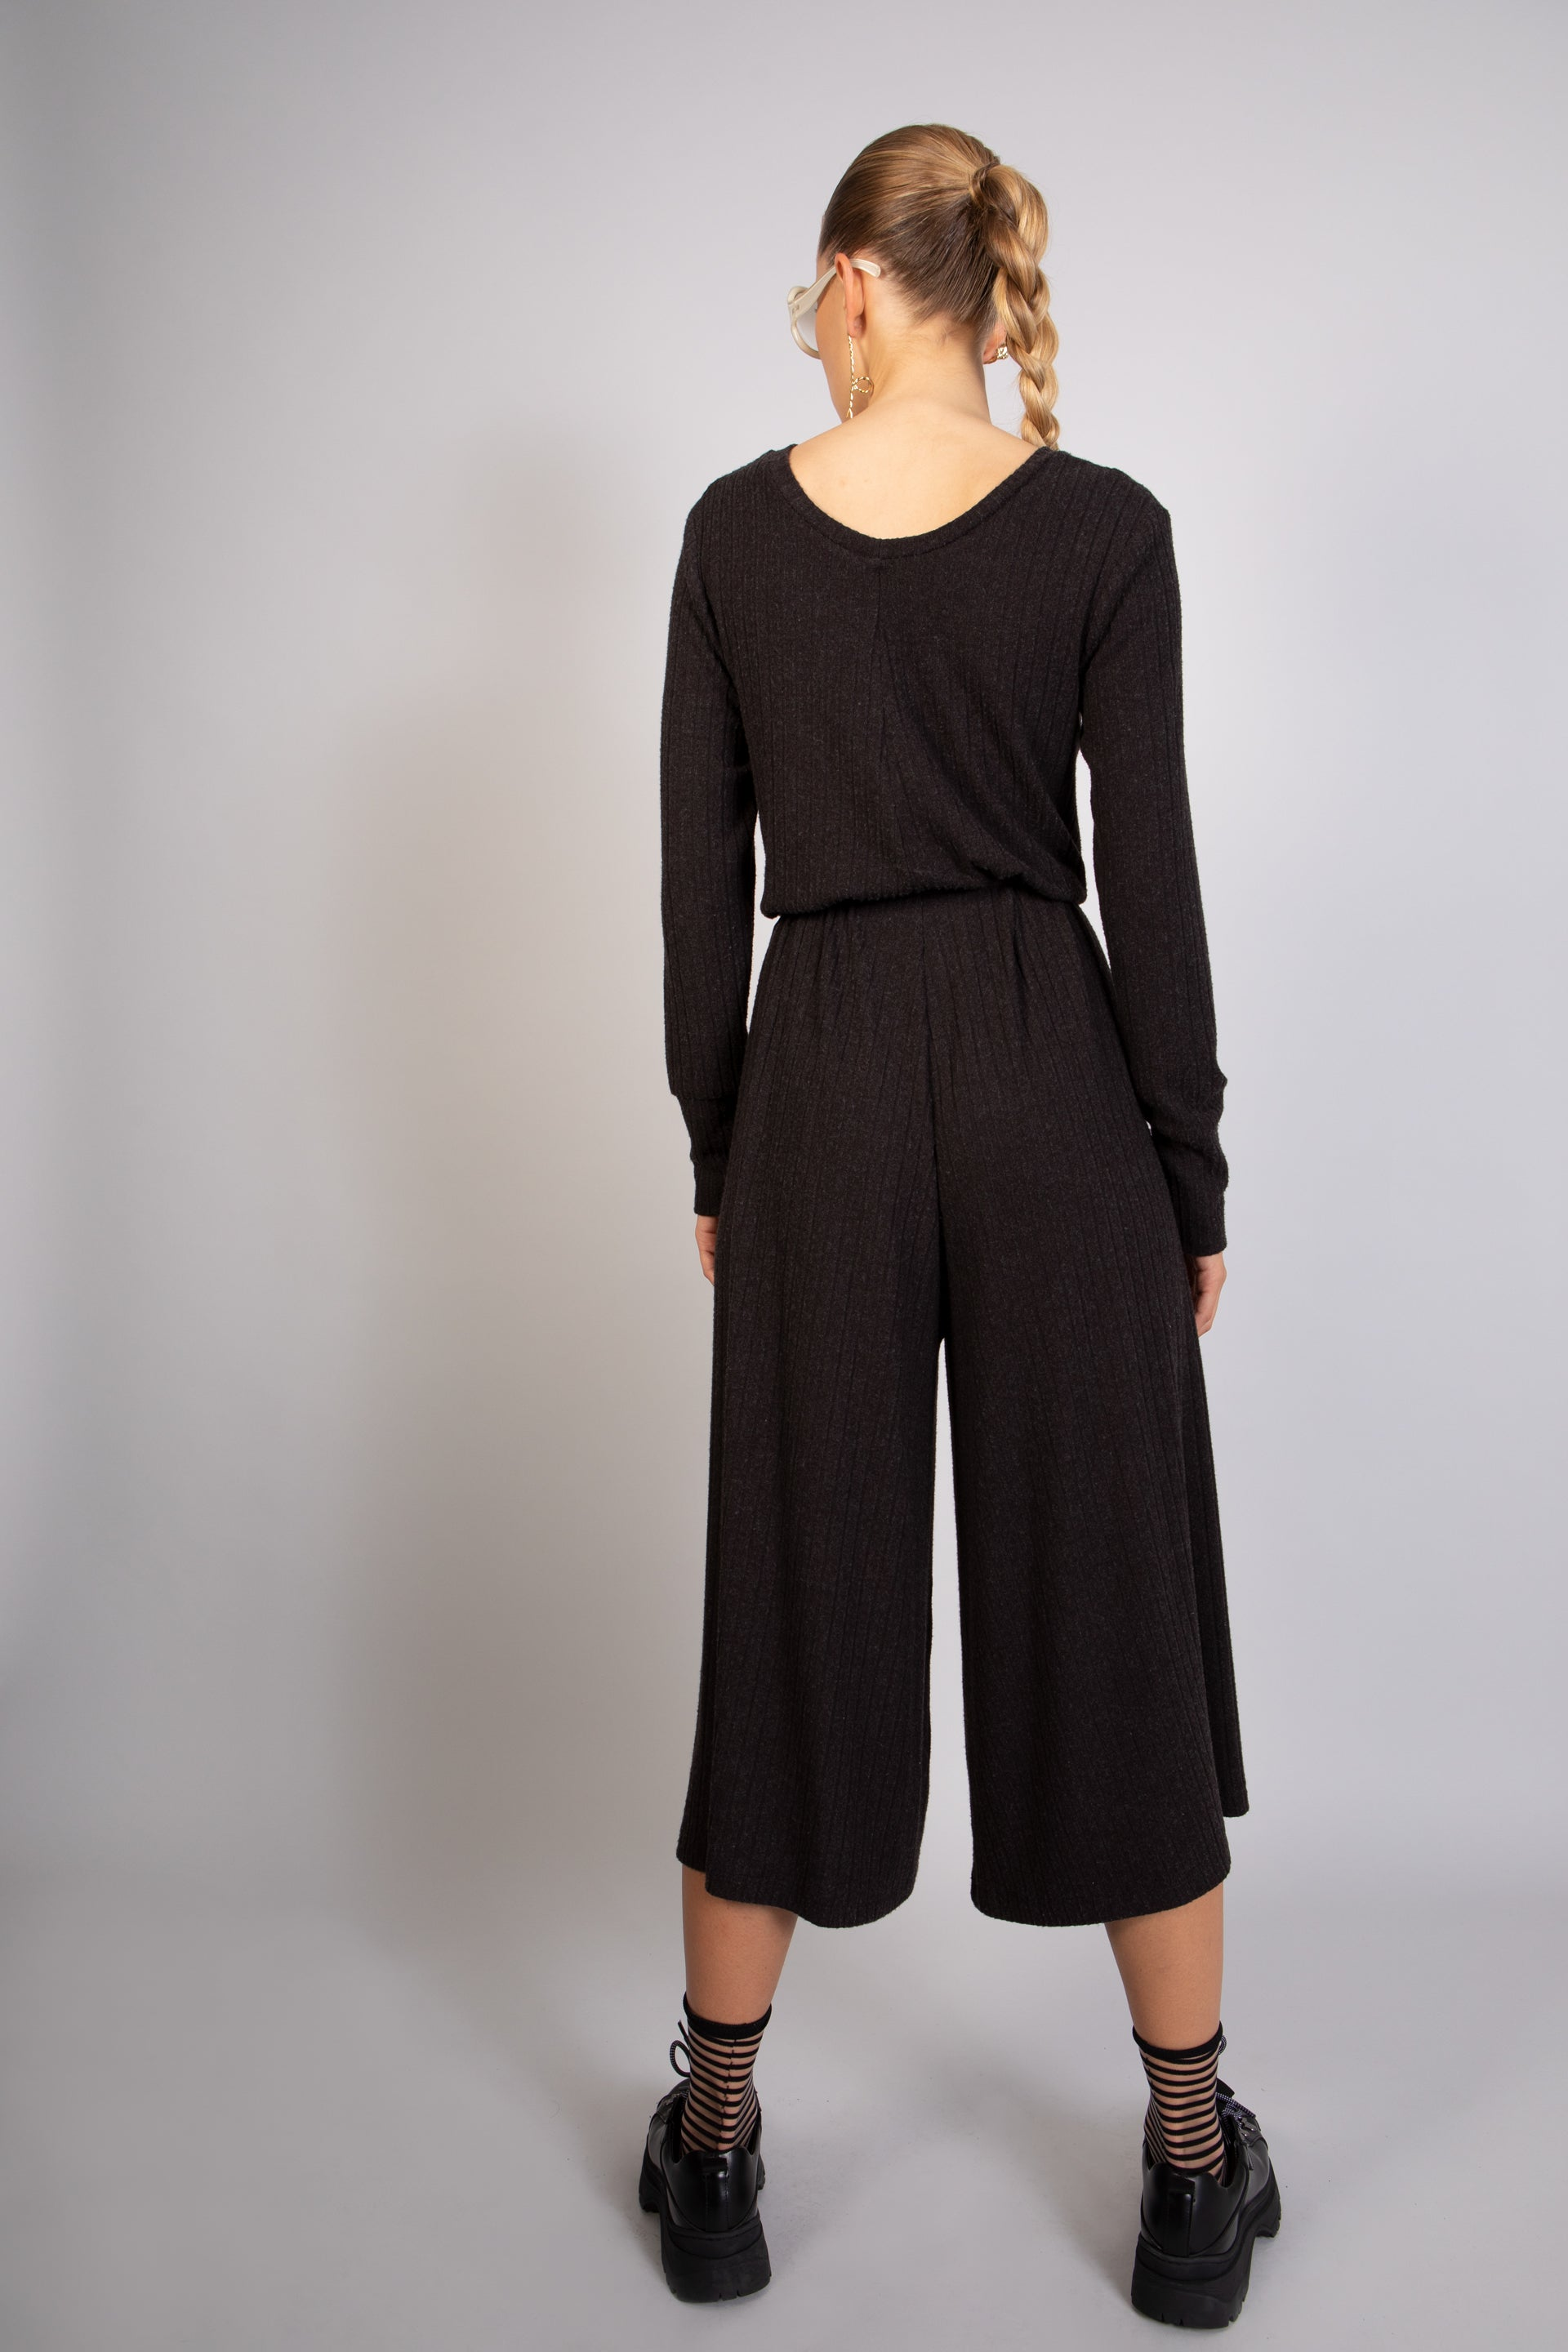 MIKE marengo jumpsuit - heroic-online